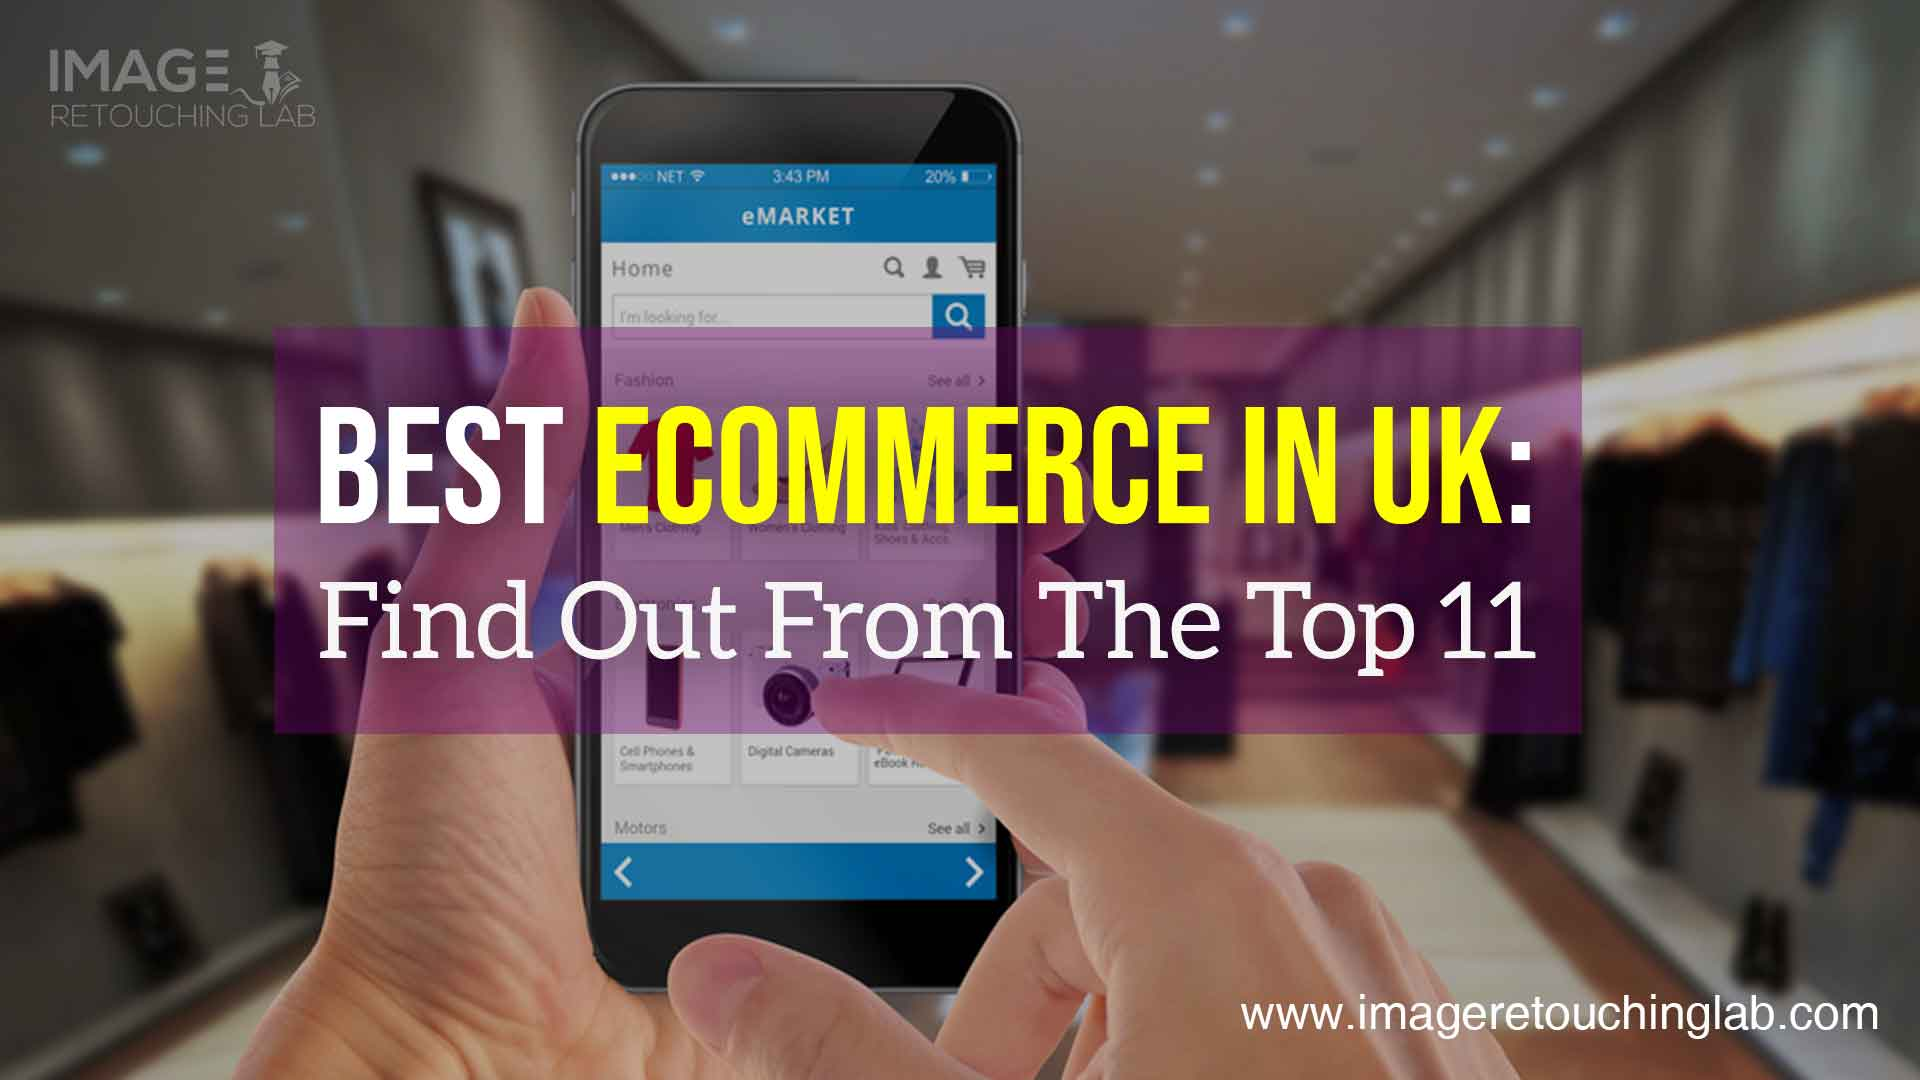 Best Ecommerce in UK: Find Out From The Top 11